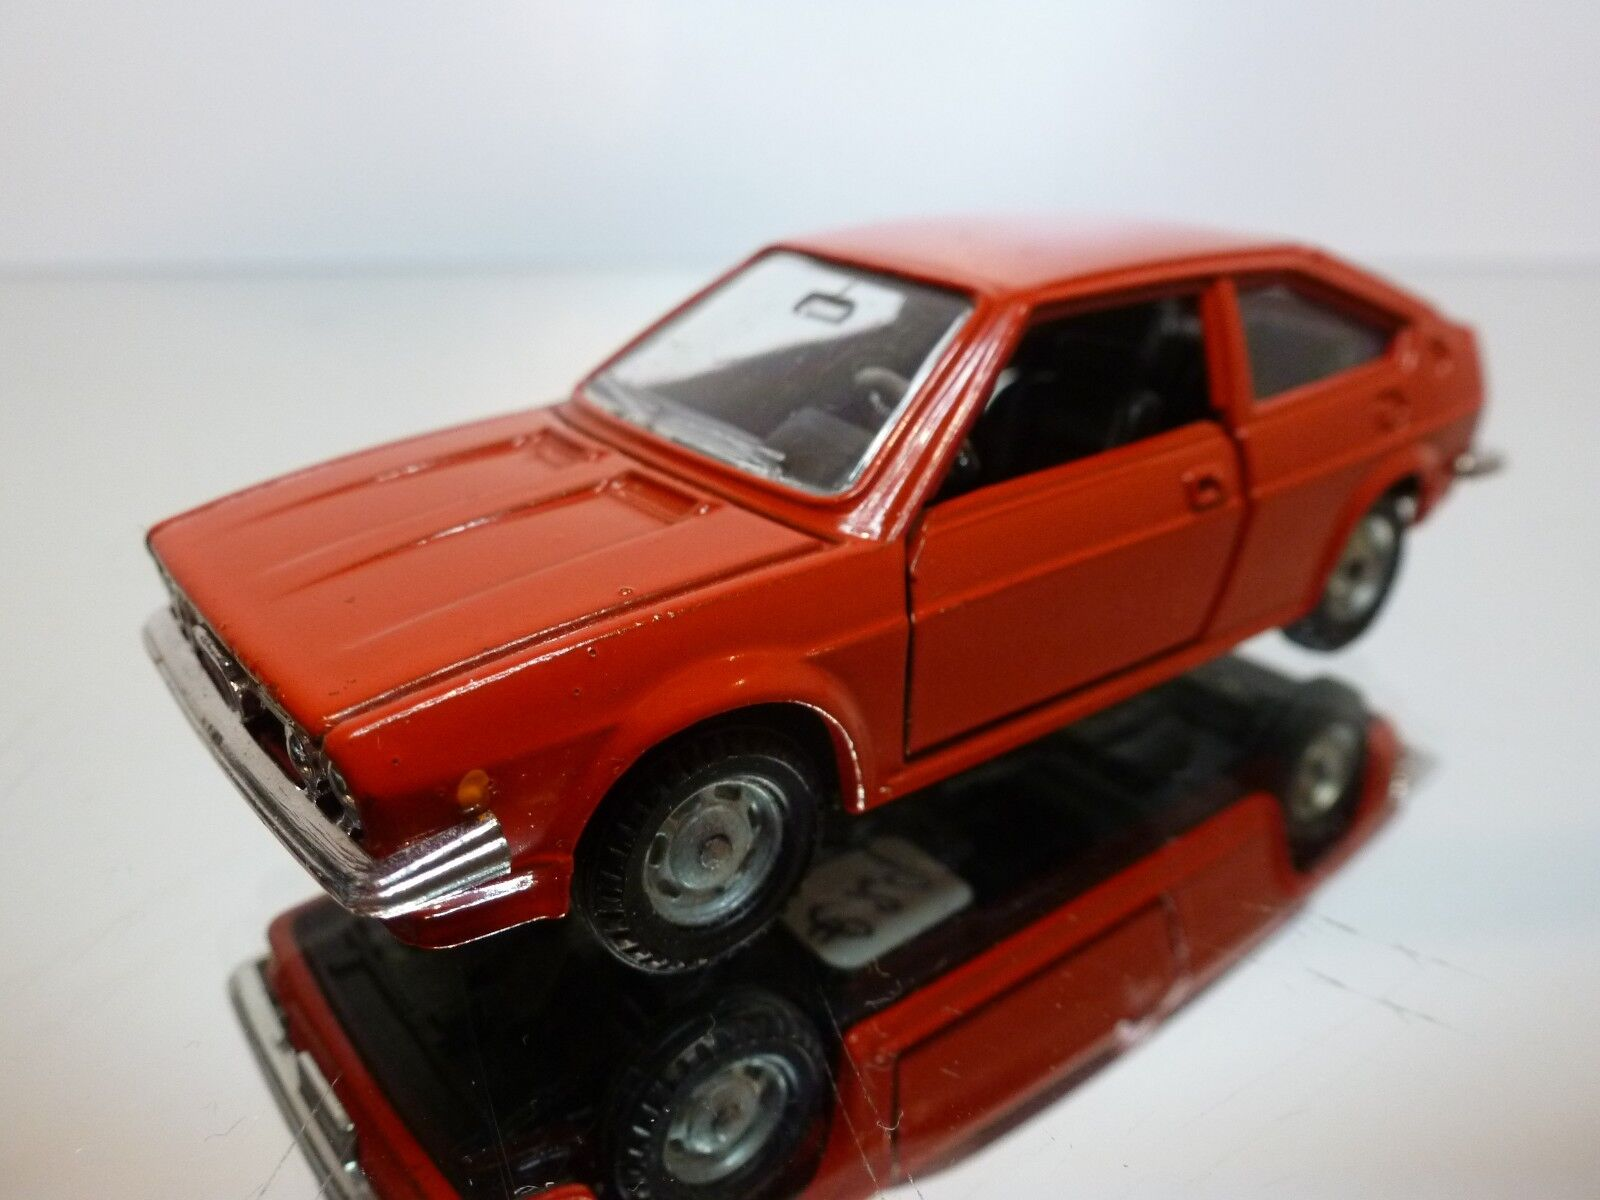 MEBETOYS A105 ALFA ROMEO ALFASUD SPRINT - - -  RED 1 43 - GOOD CONDITION e58777